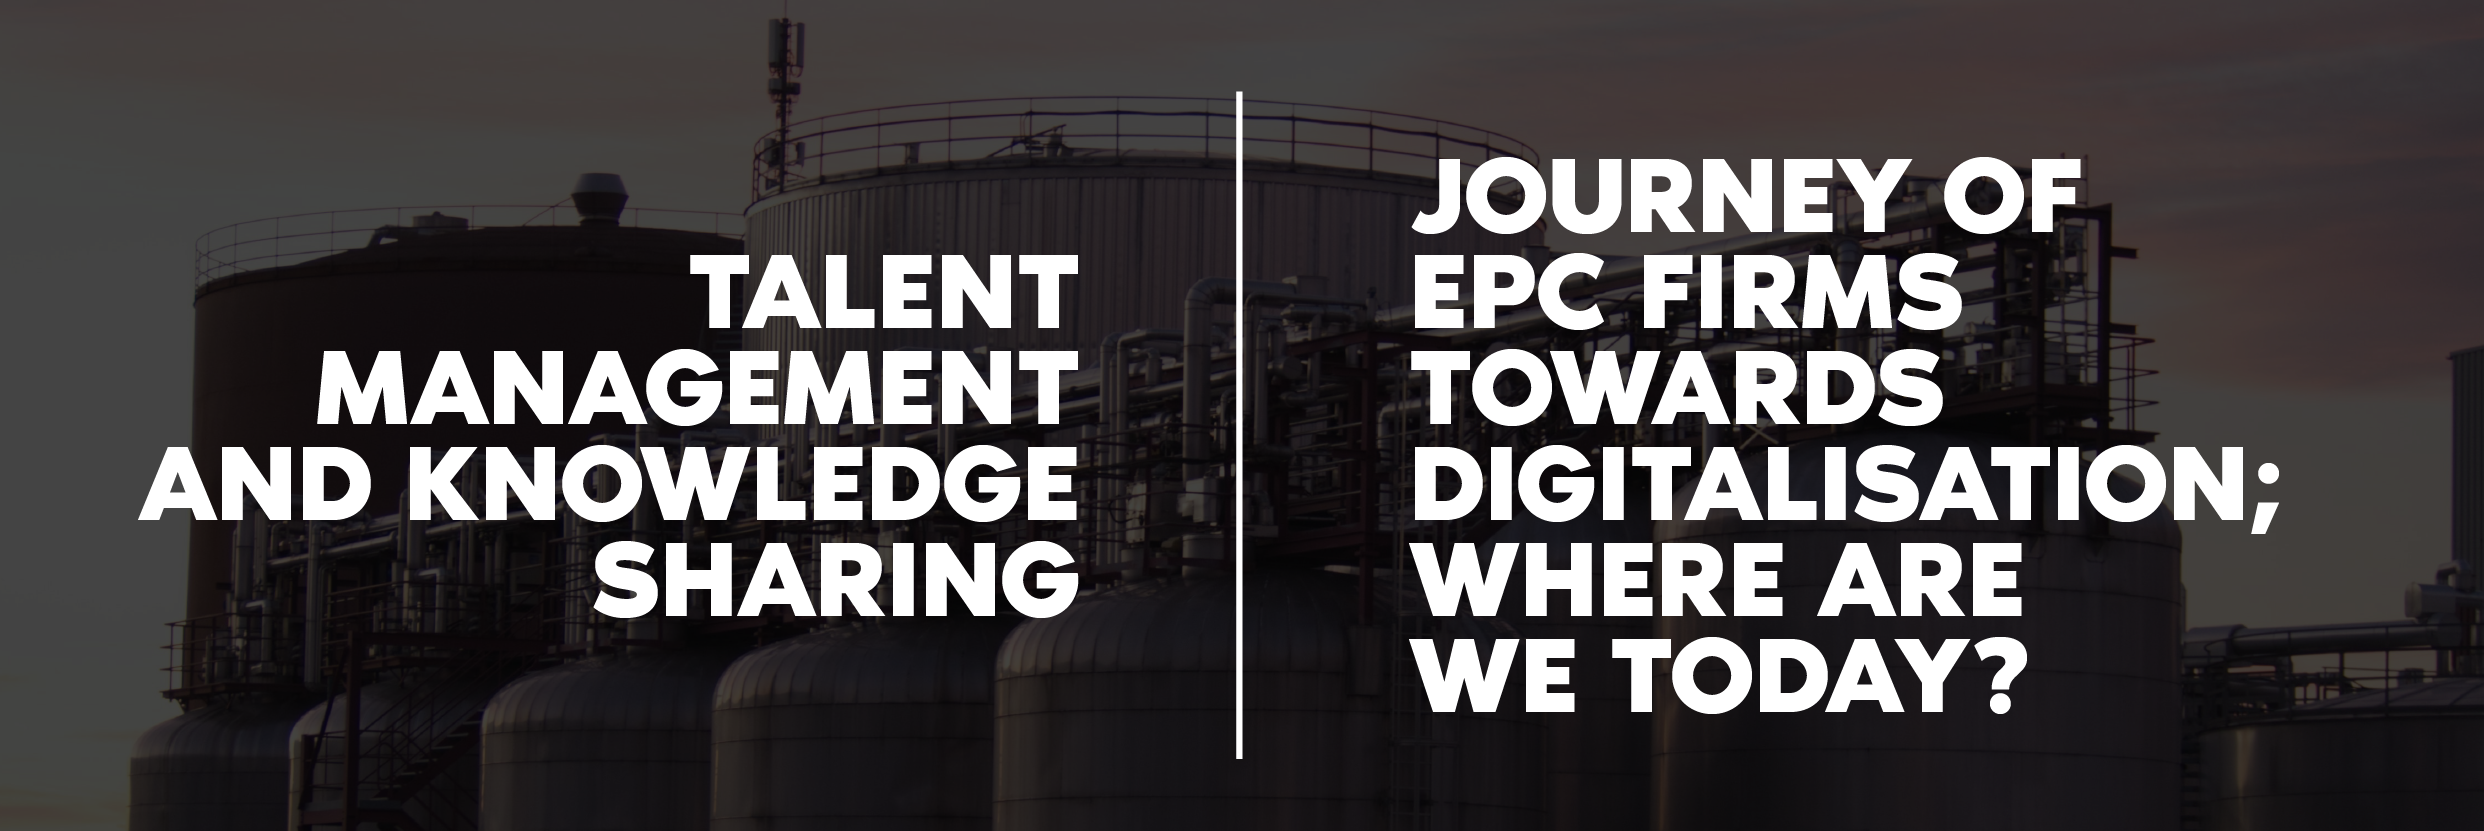 Feb 22: Talent Management and Knowledge Sharing; Feb 23: Journey  of EPC firms towards  Digitalisation; Where are we today?